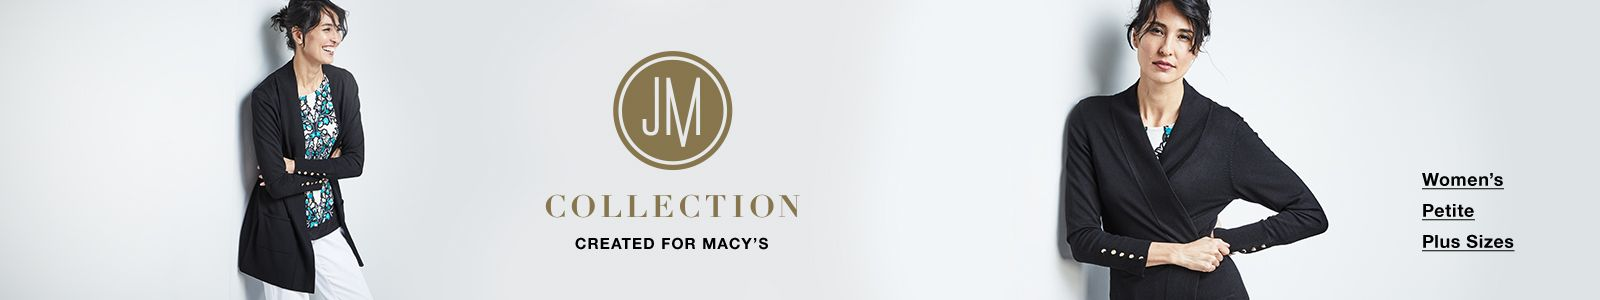 JM Collections, Created for Macy's, Women's, Petite, Plus Sizes